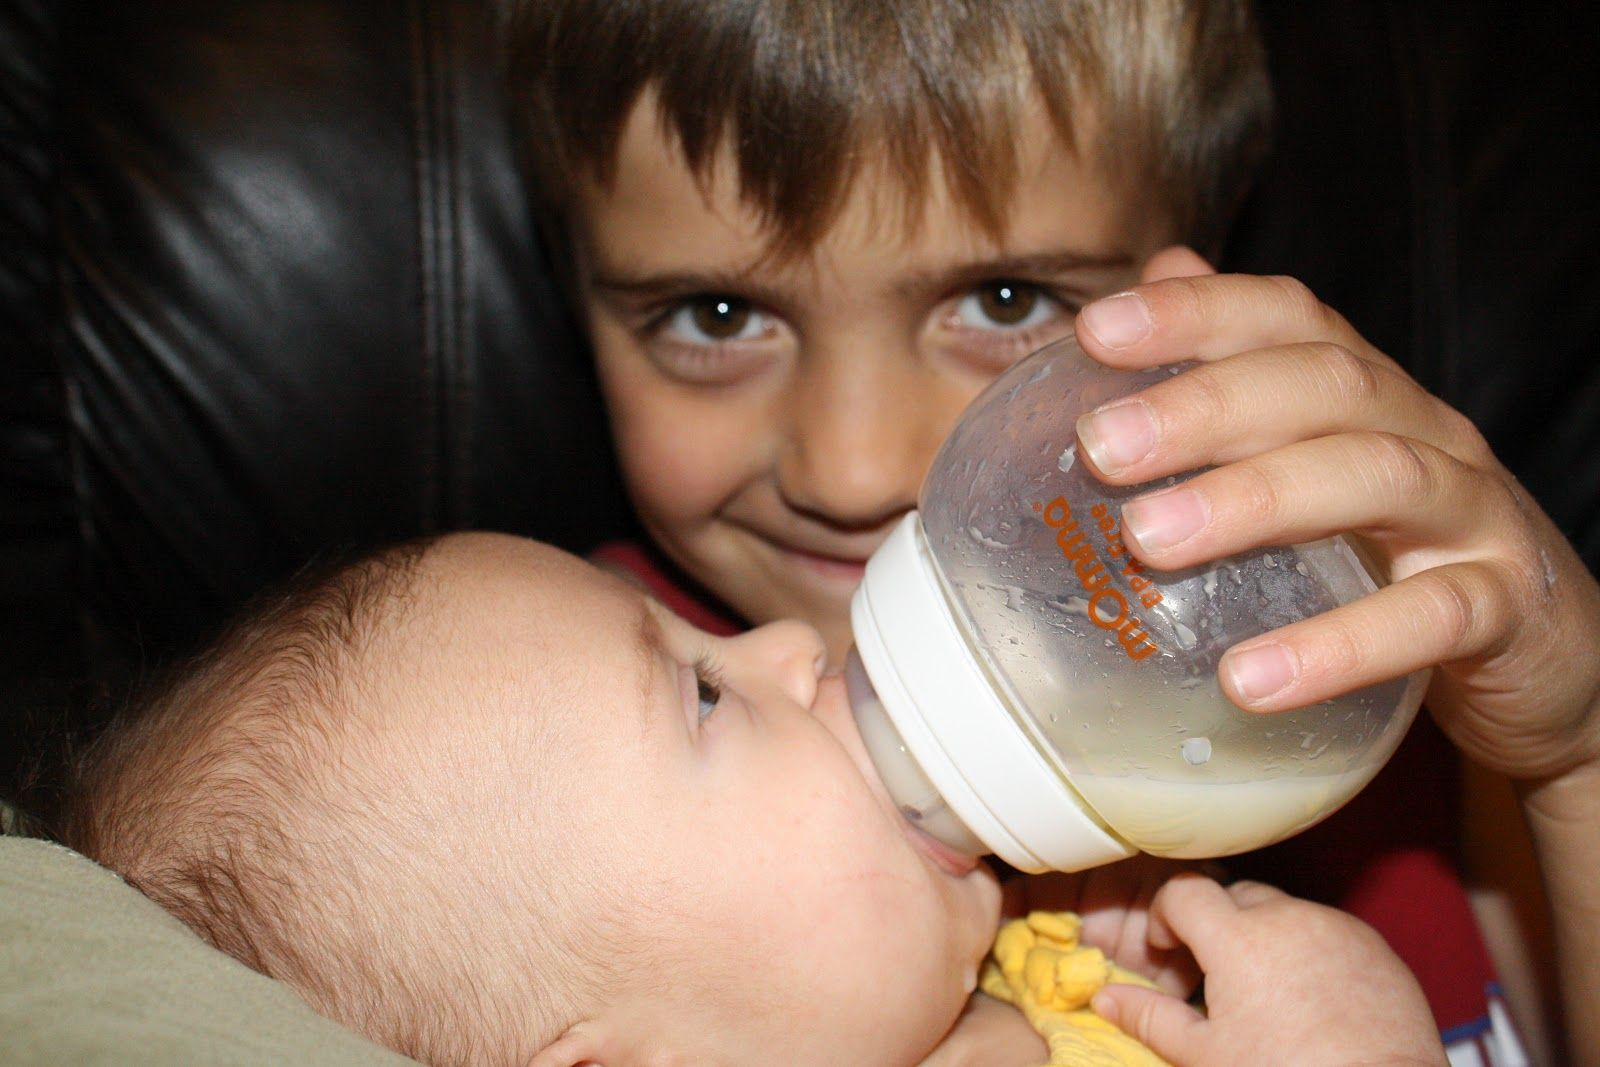 Sister Ing Her Brother With Breast Milk